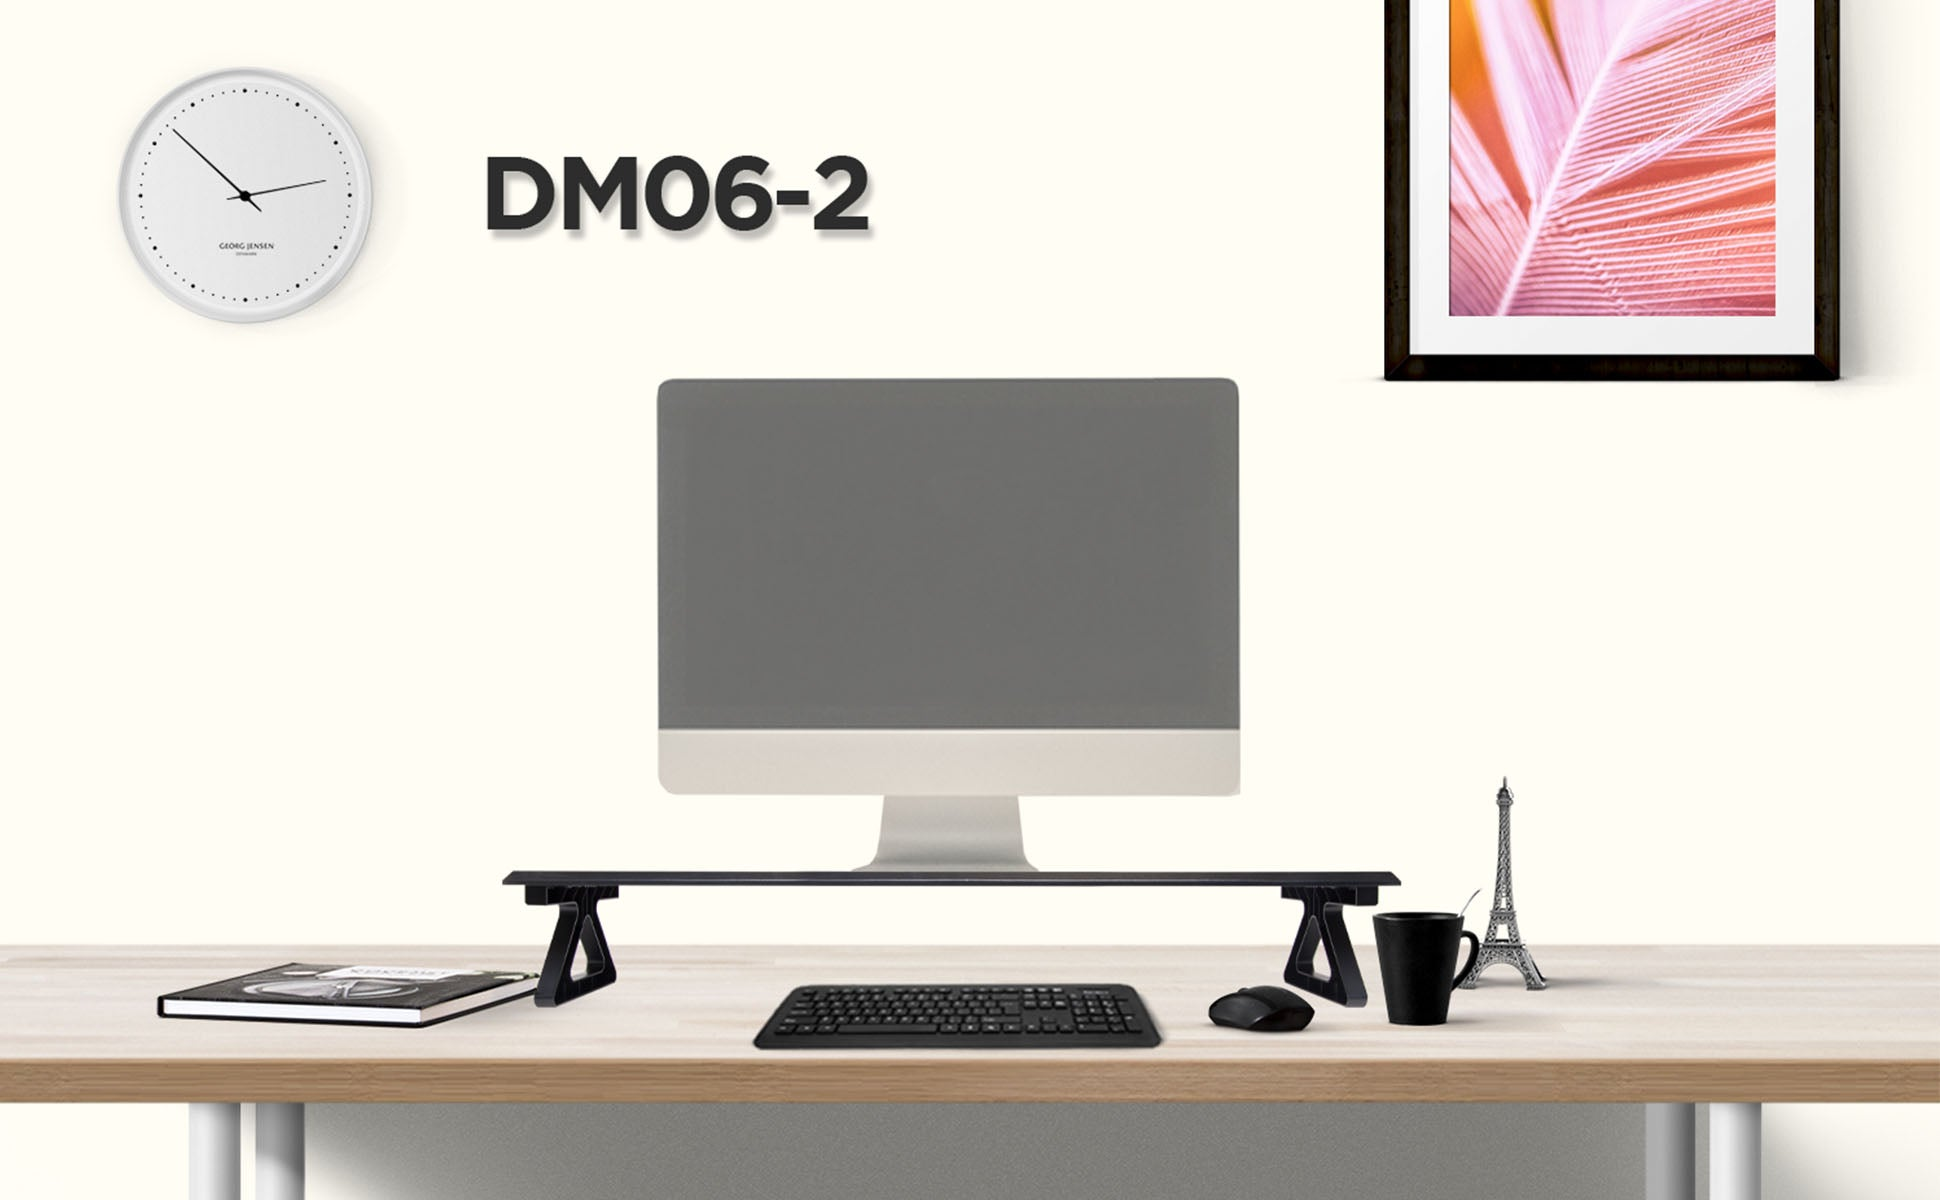 dm06-2, desk, mount, riser, stand, monitor, screen, computer, laptop, keyboard, tidy, space saver, office